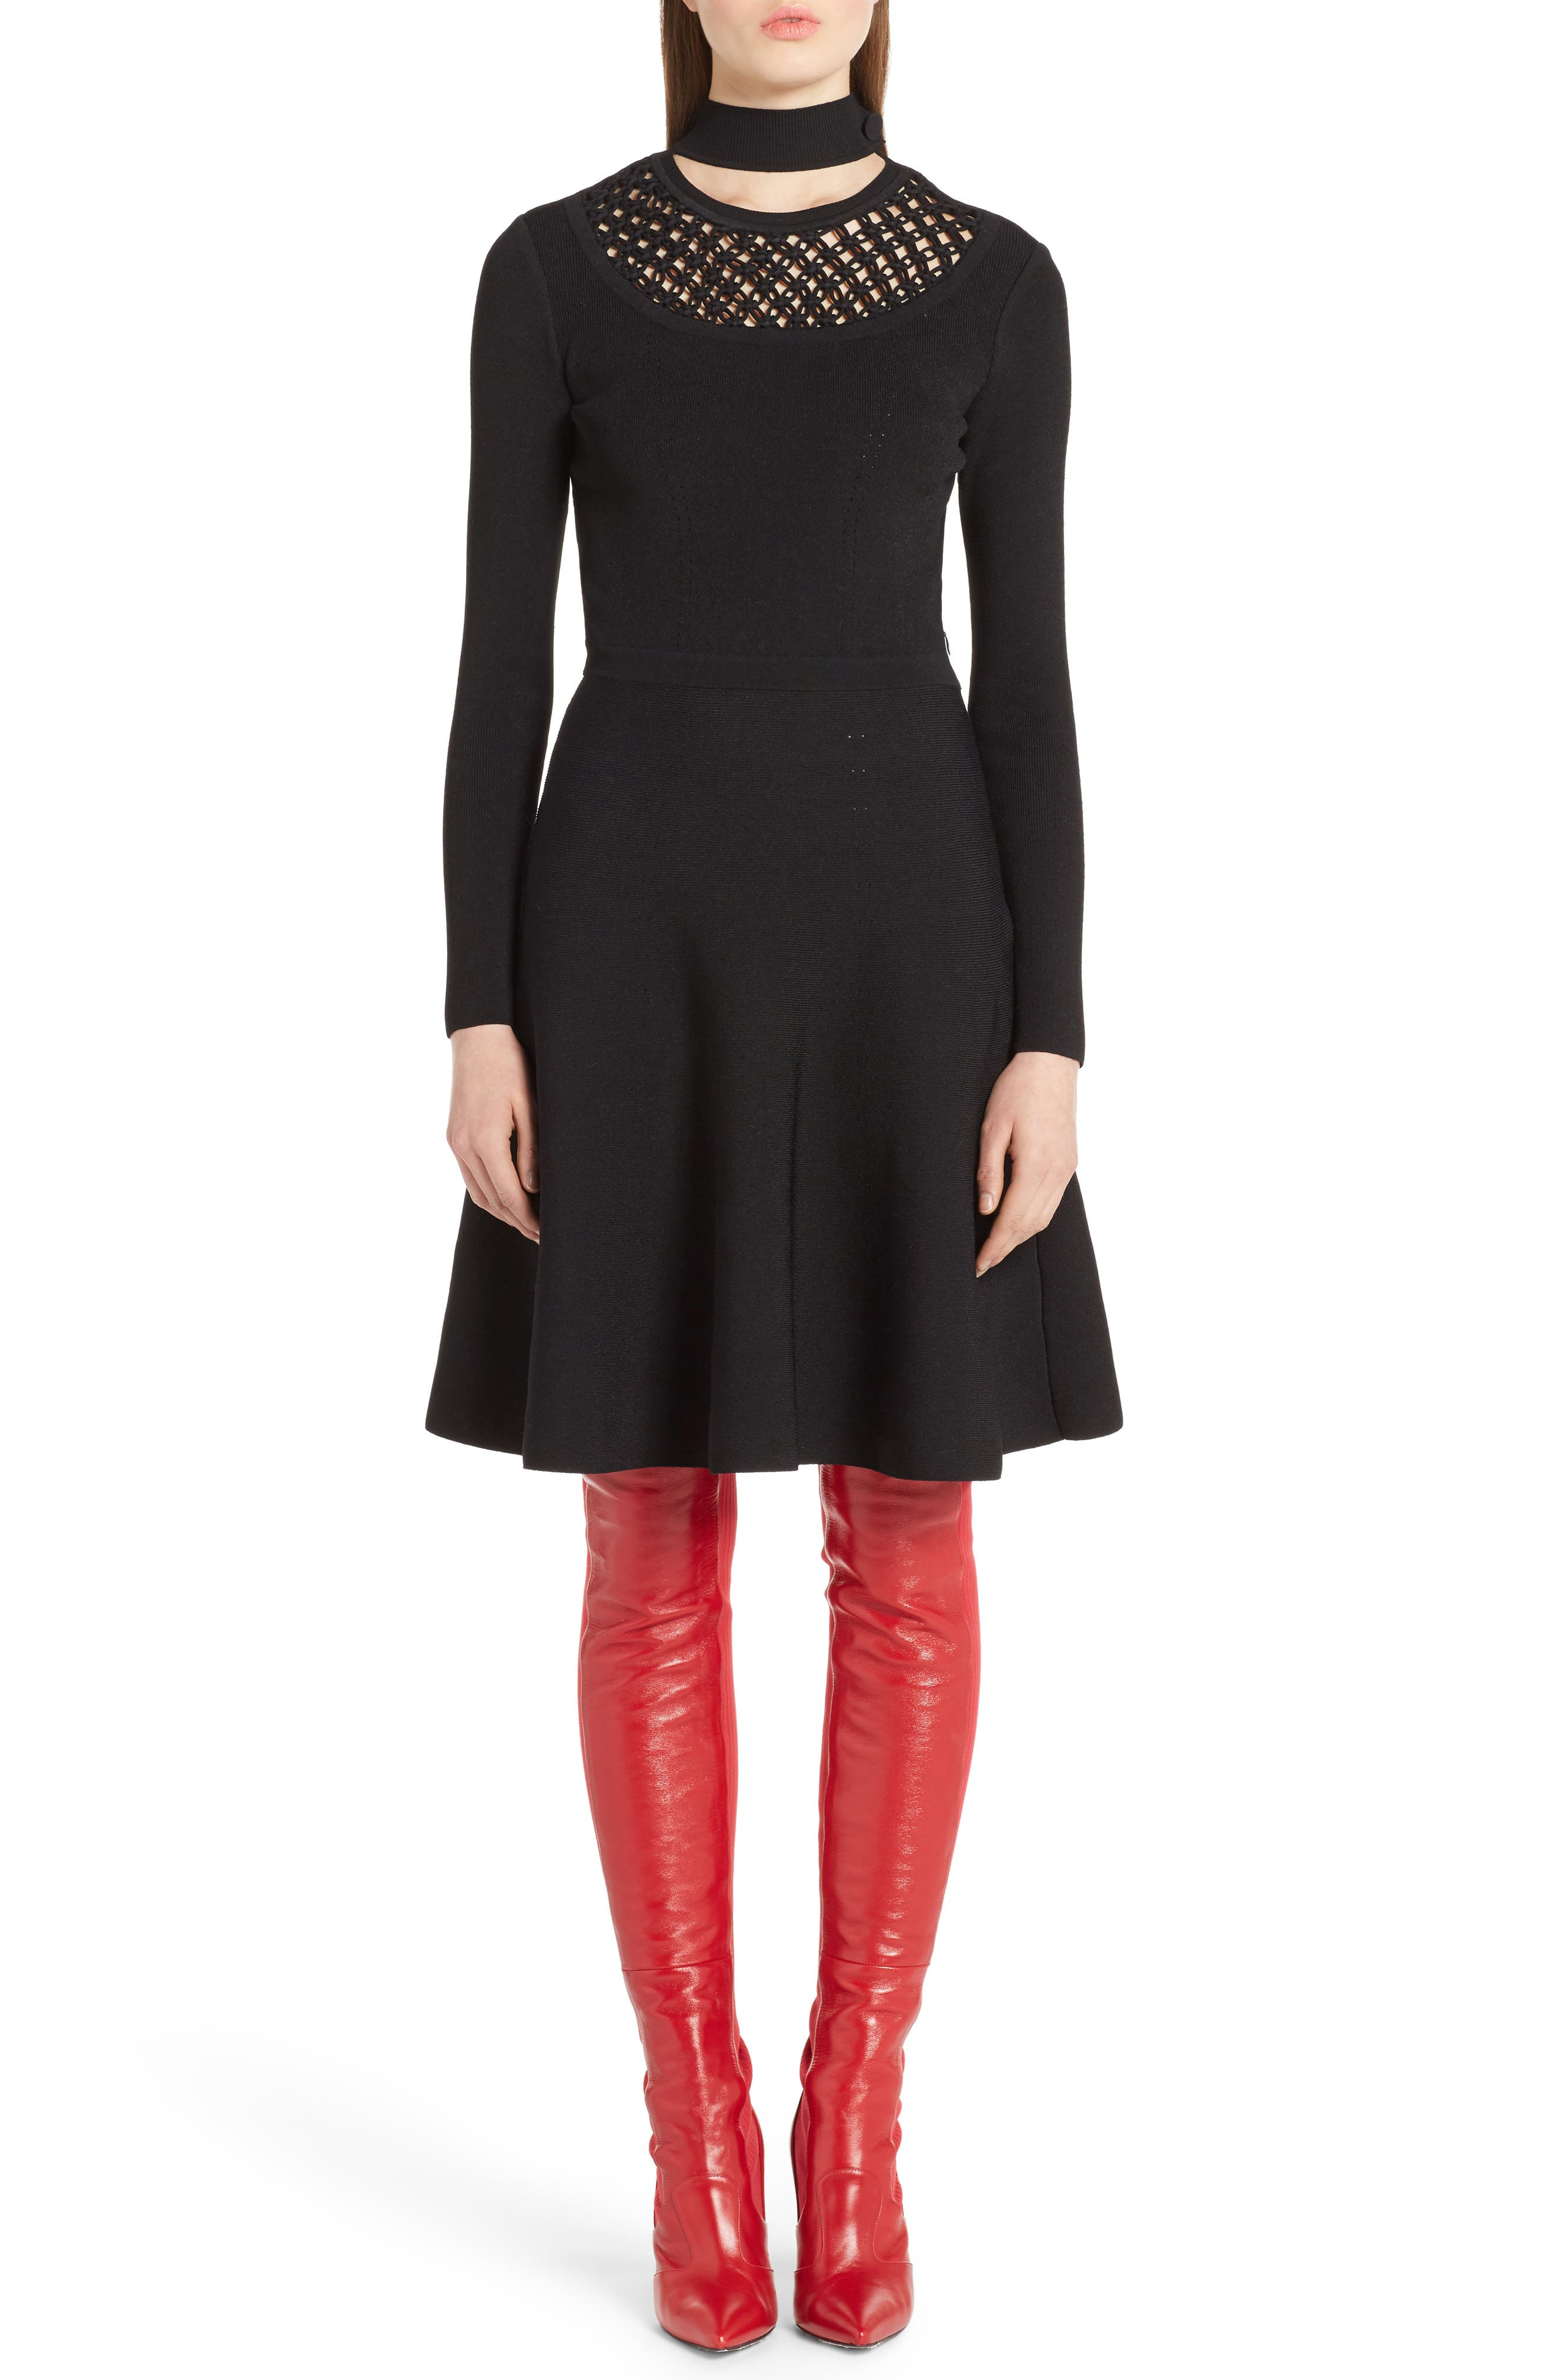 Fendi Macramé Inset Knit Dress